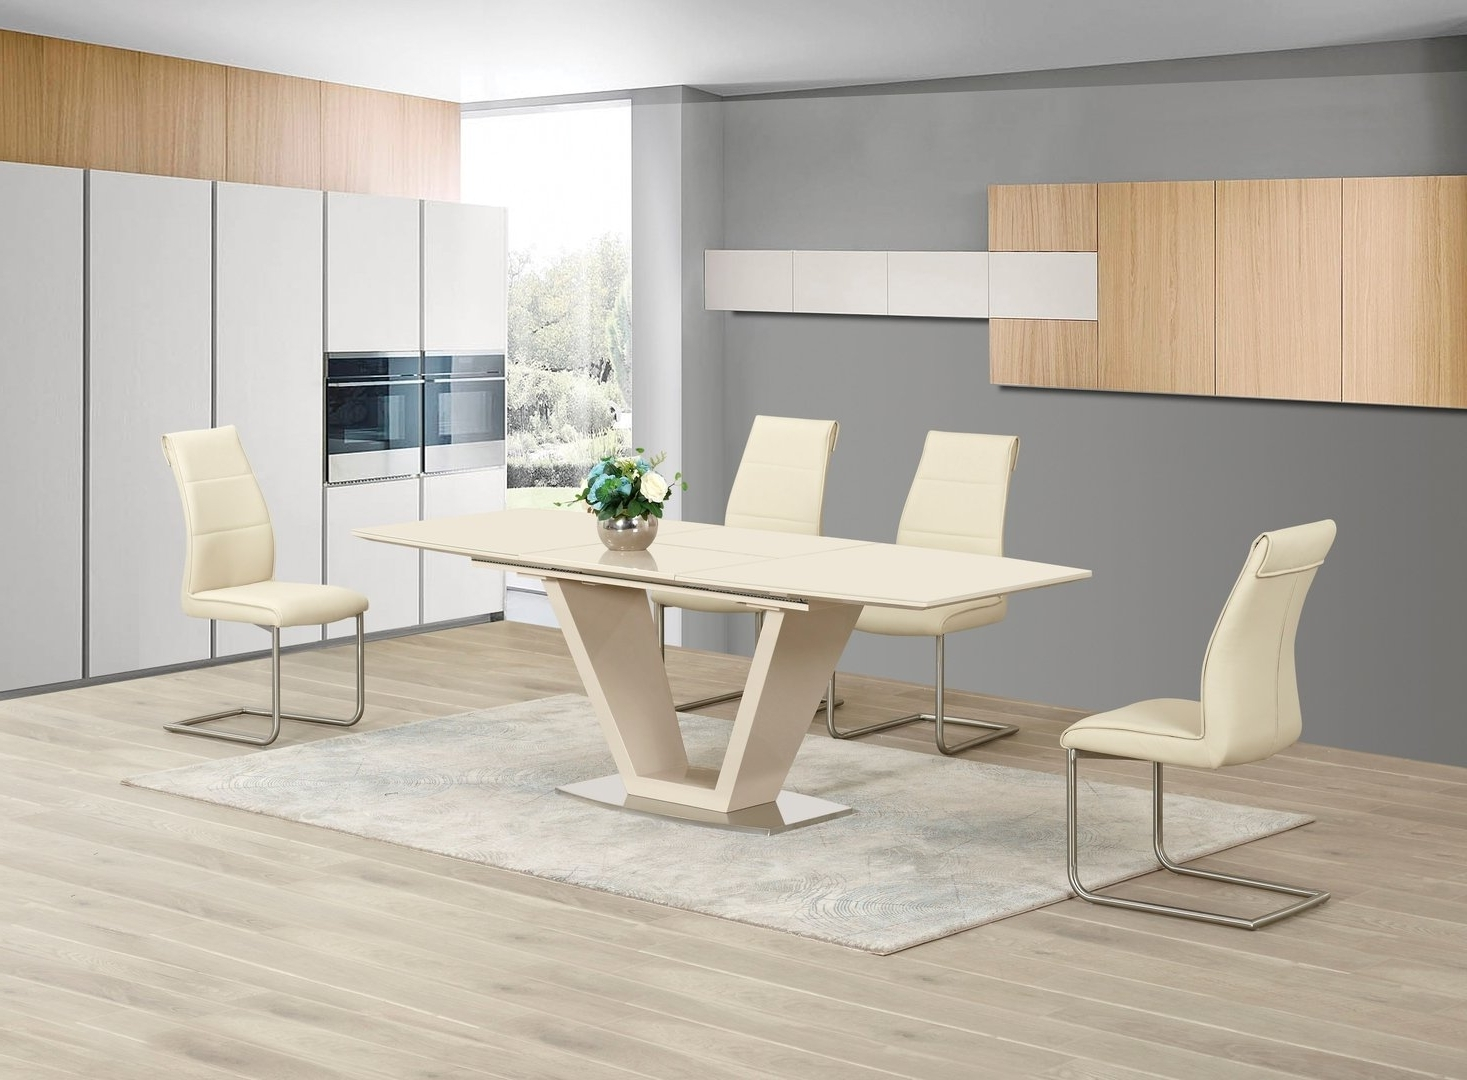 Dining Tables And 8 Chairs Sets inside Newest Extending Cream Glass High Gloss Dining Table And 8 Cream Chairs